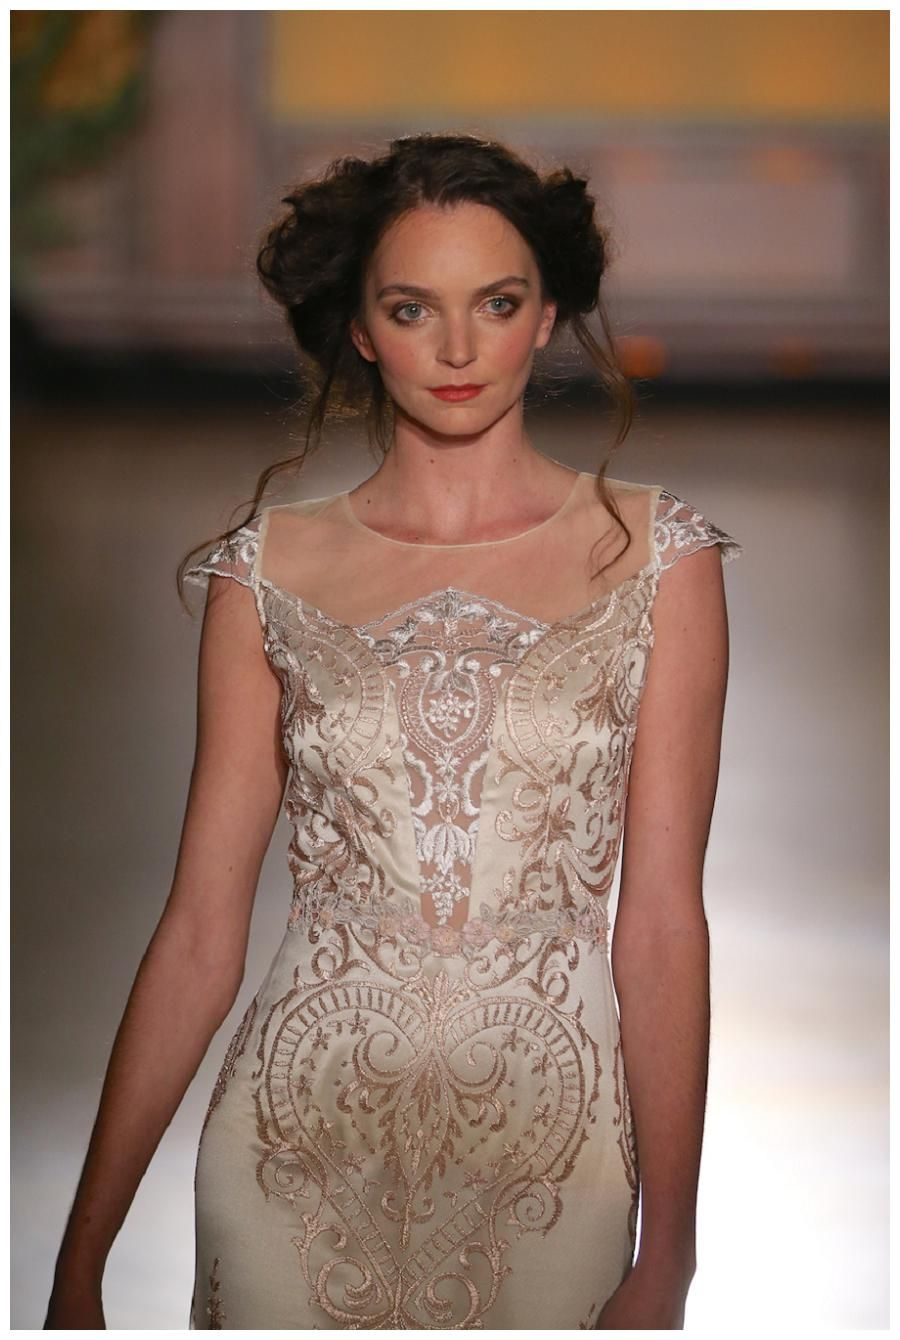 Wedding dress from the Claire Pettibone Fall 2016 Bridal Collection.